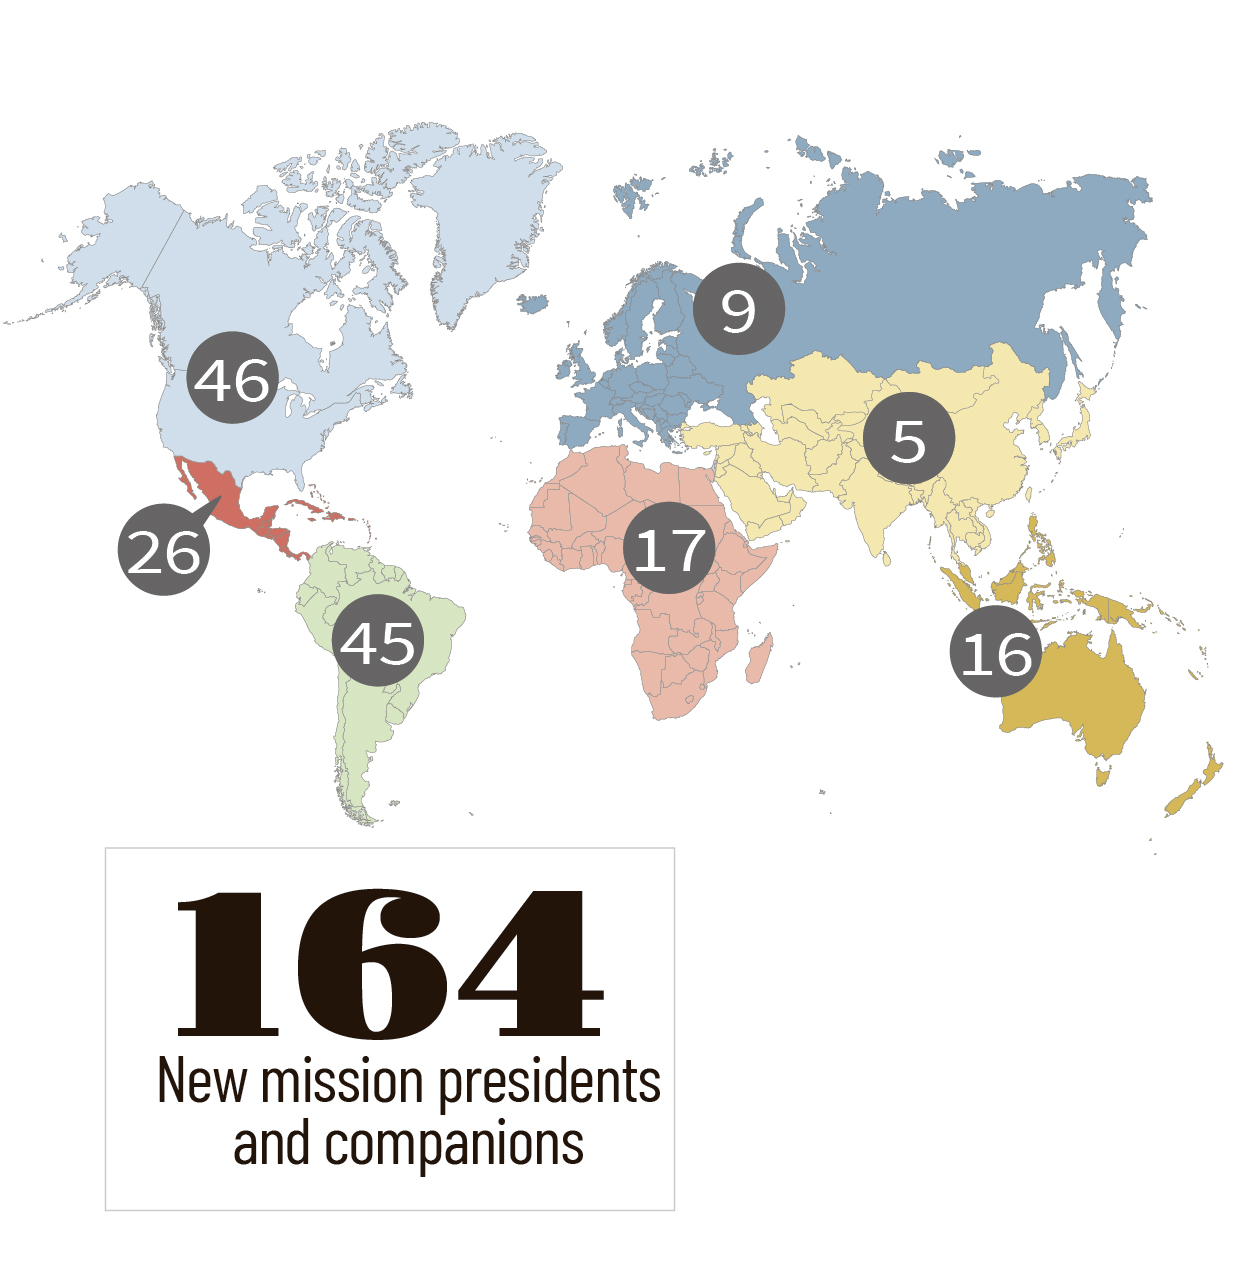 164 new mission presidents and companions have been called by the First Presidency of The Church of Jesus Christ of Latter-day Saints. They will begin their service in July 2019.